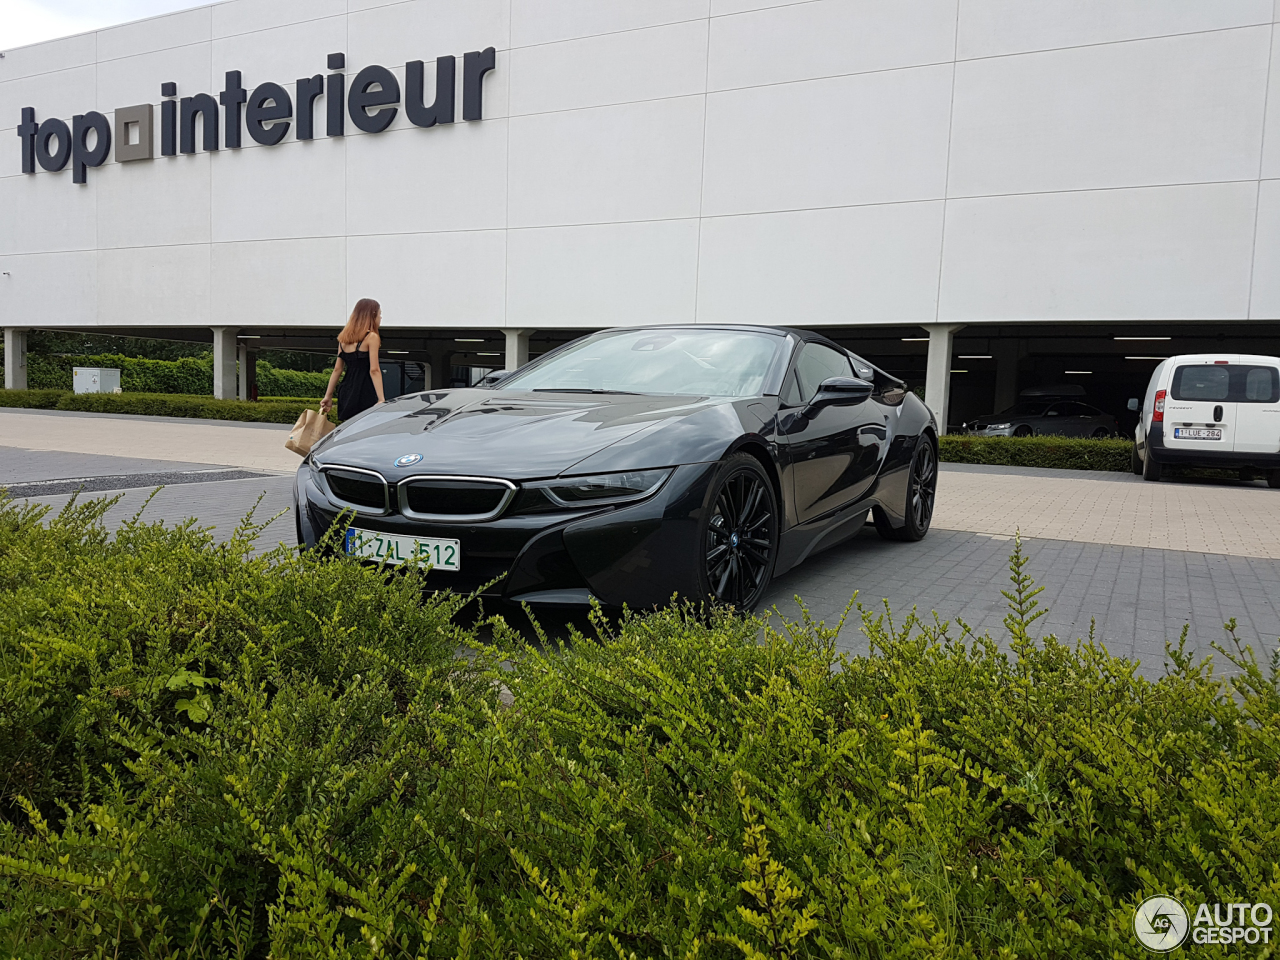 Bmw I8 Interieur Bmw I8 Roadster 9 July 2018 Autogespot